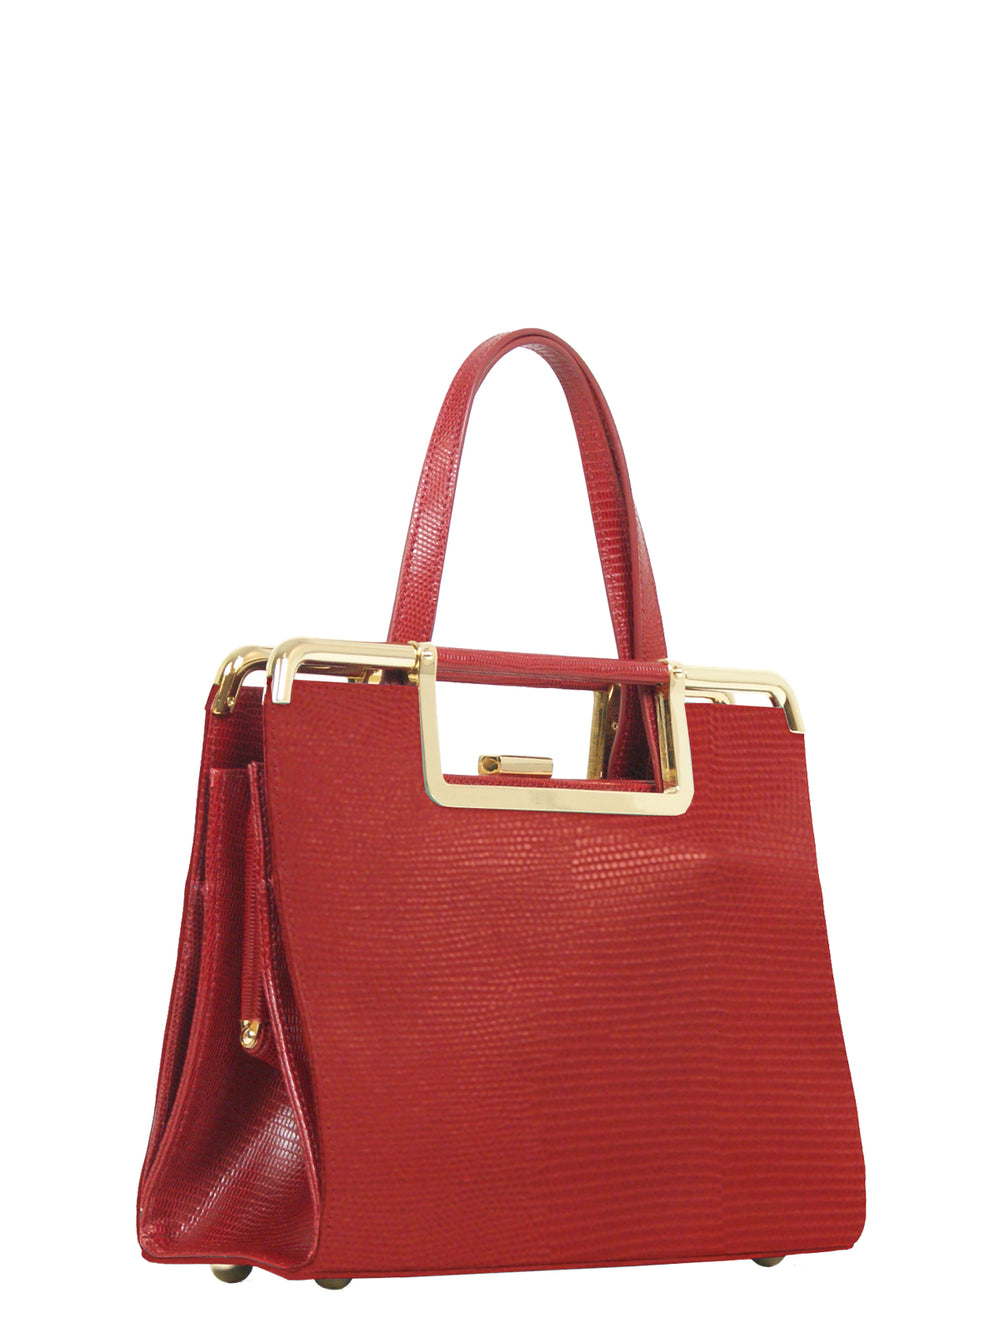 Audrey Accordion Satchel in Ruby, Z SPOKE BY ZAC POSEN - elilhaam.com